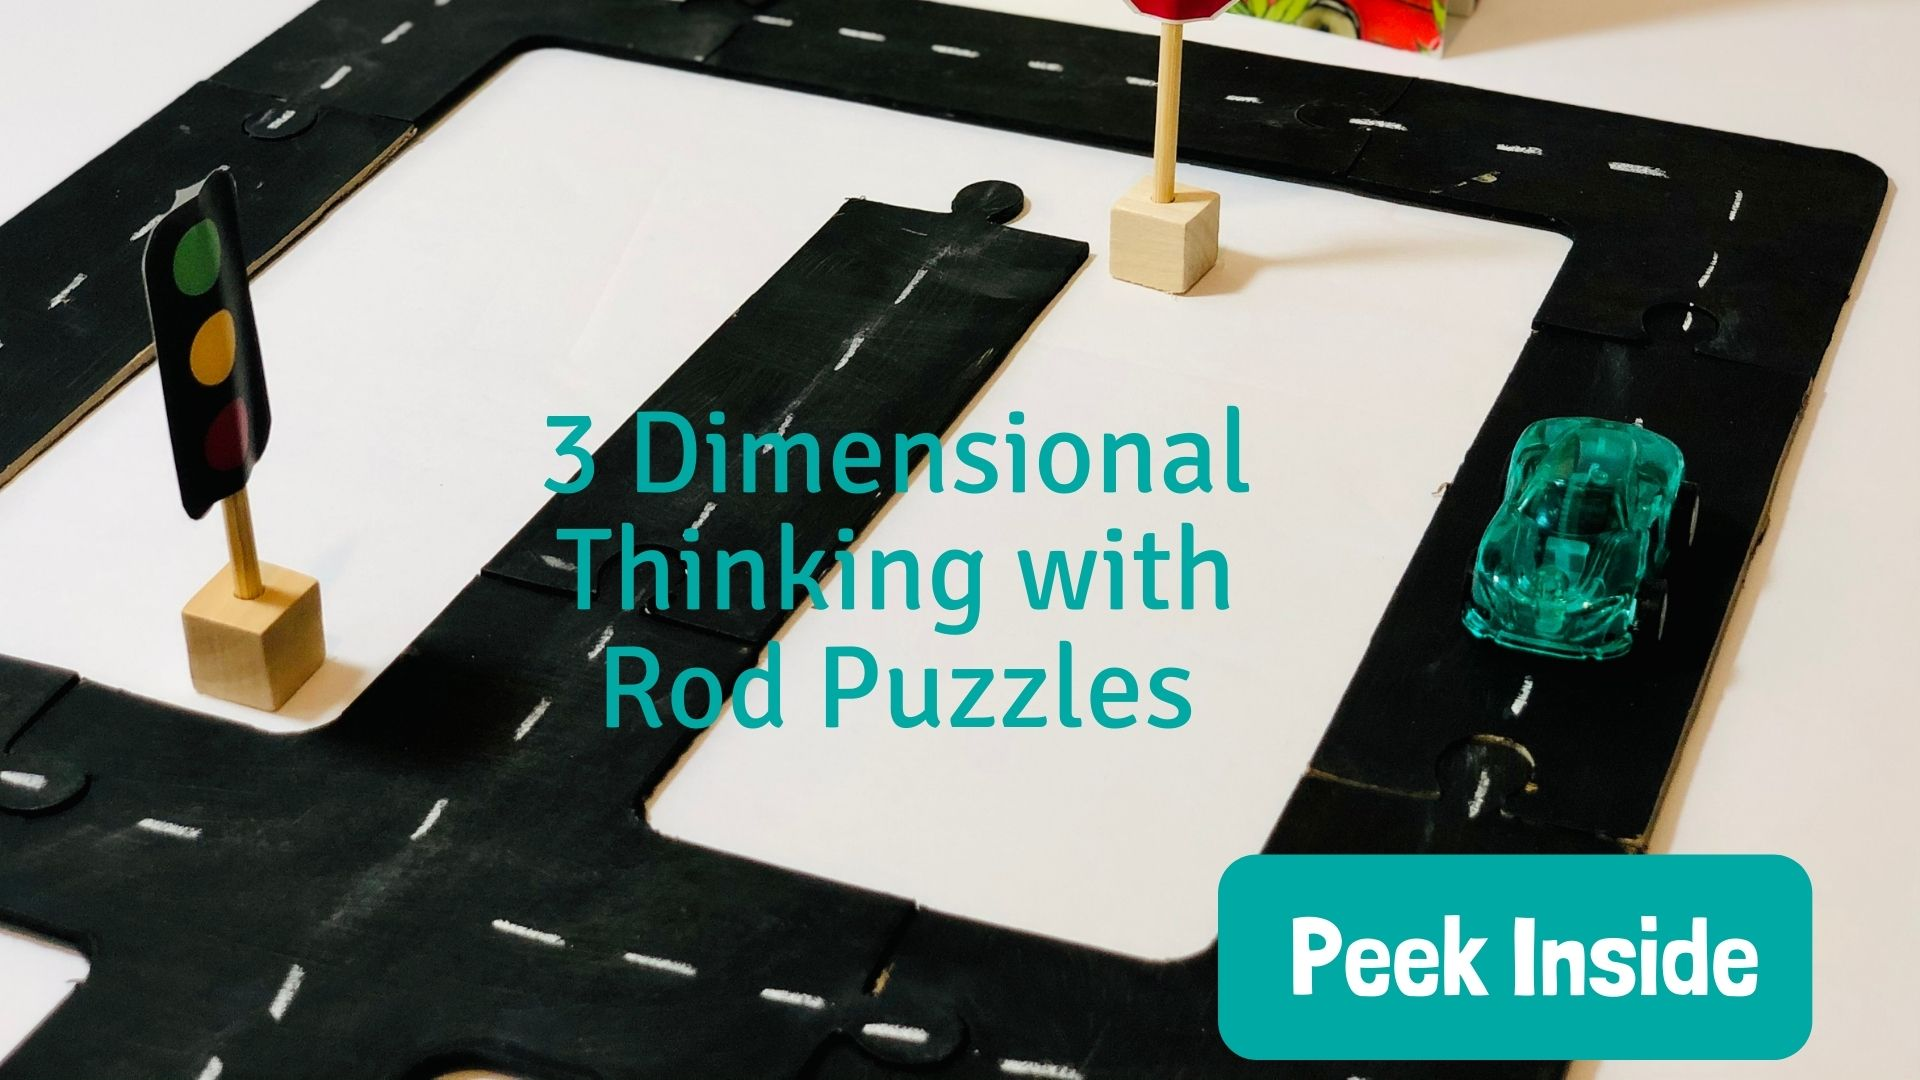 3 Dimensional Thinking for preschoolers